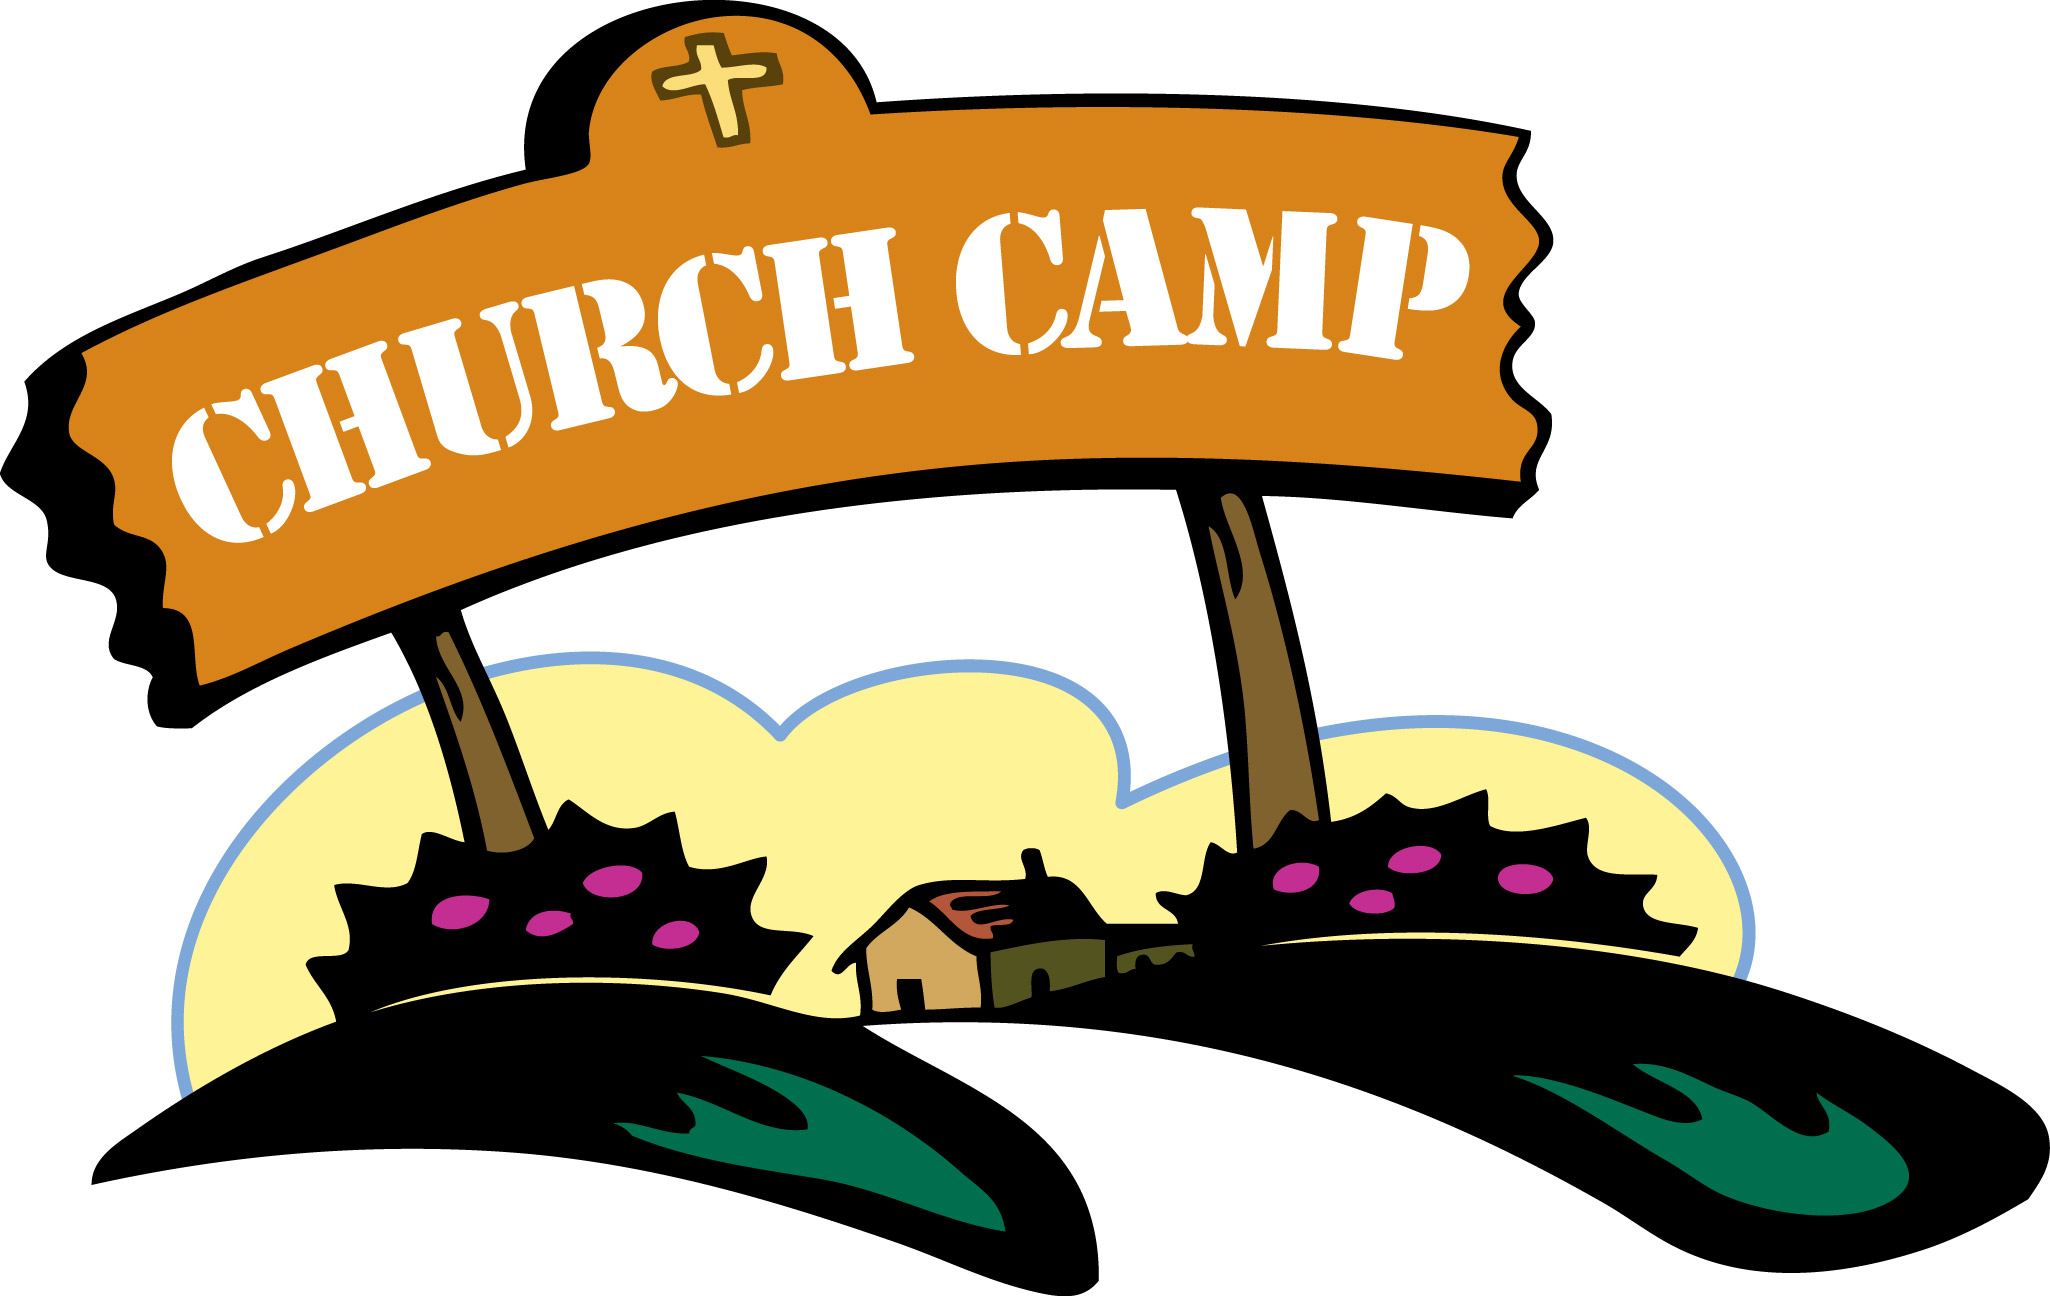 Family going to download. Free clipart for church programs